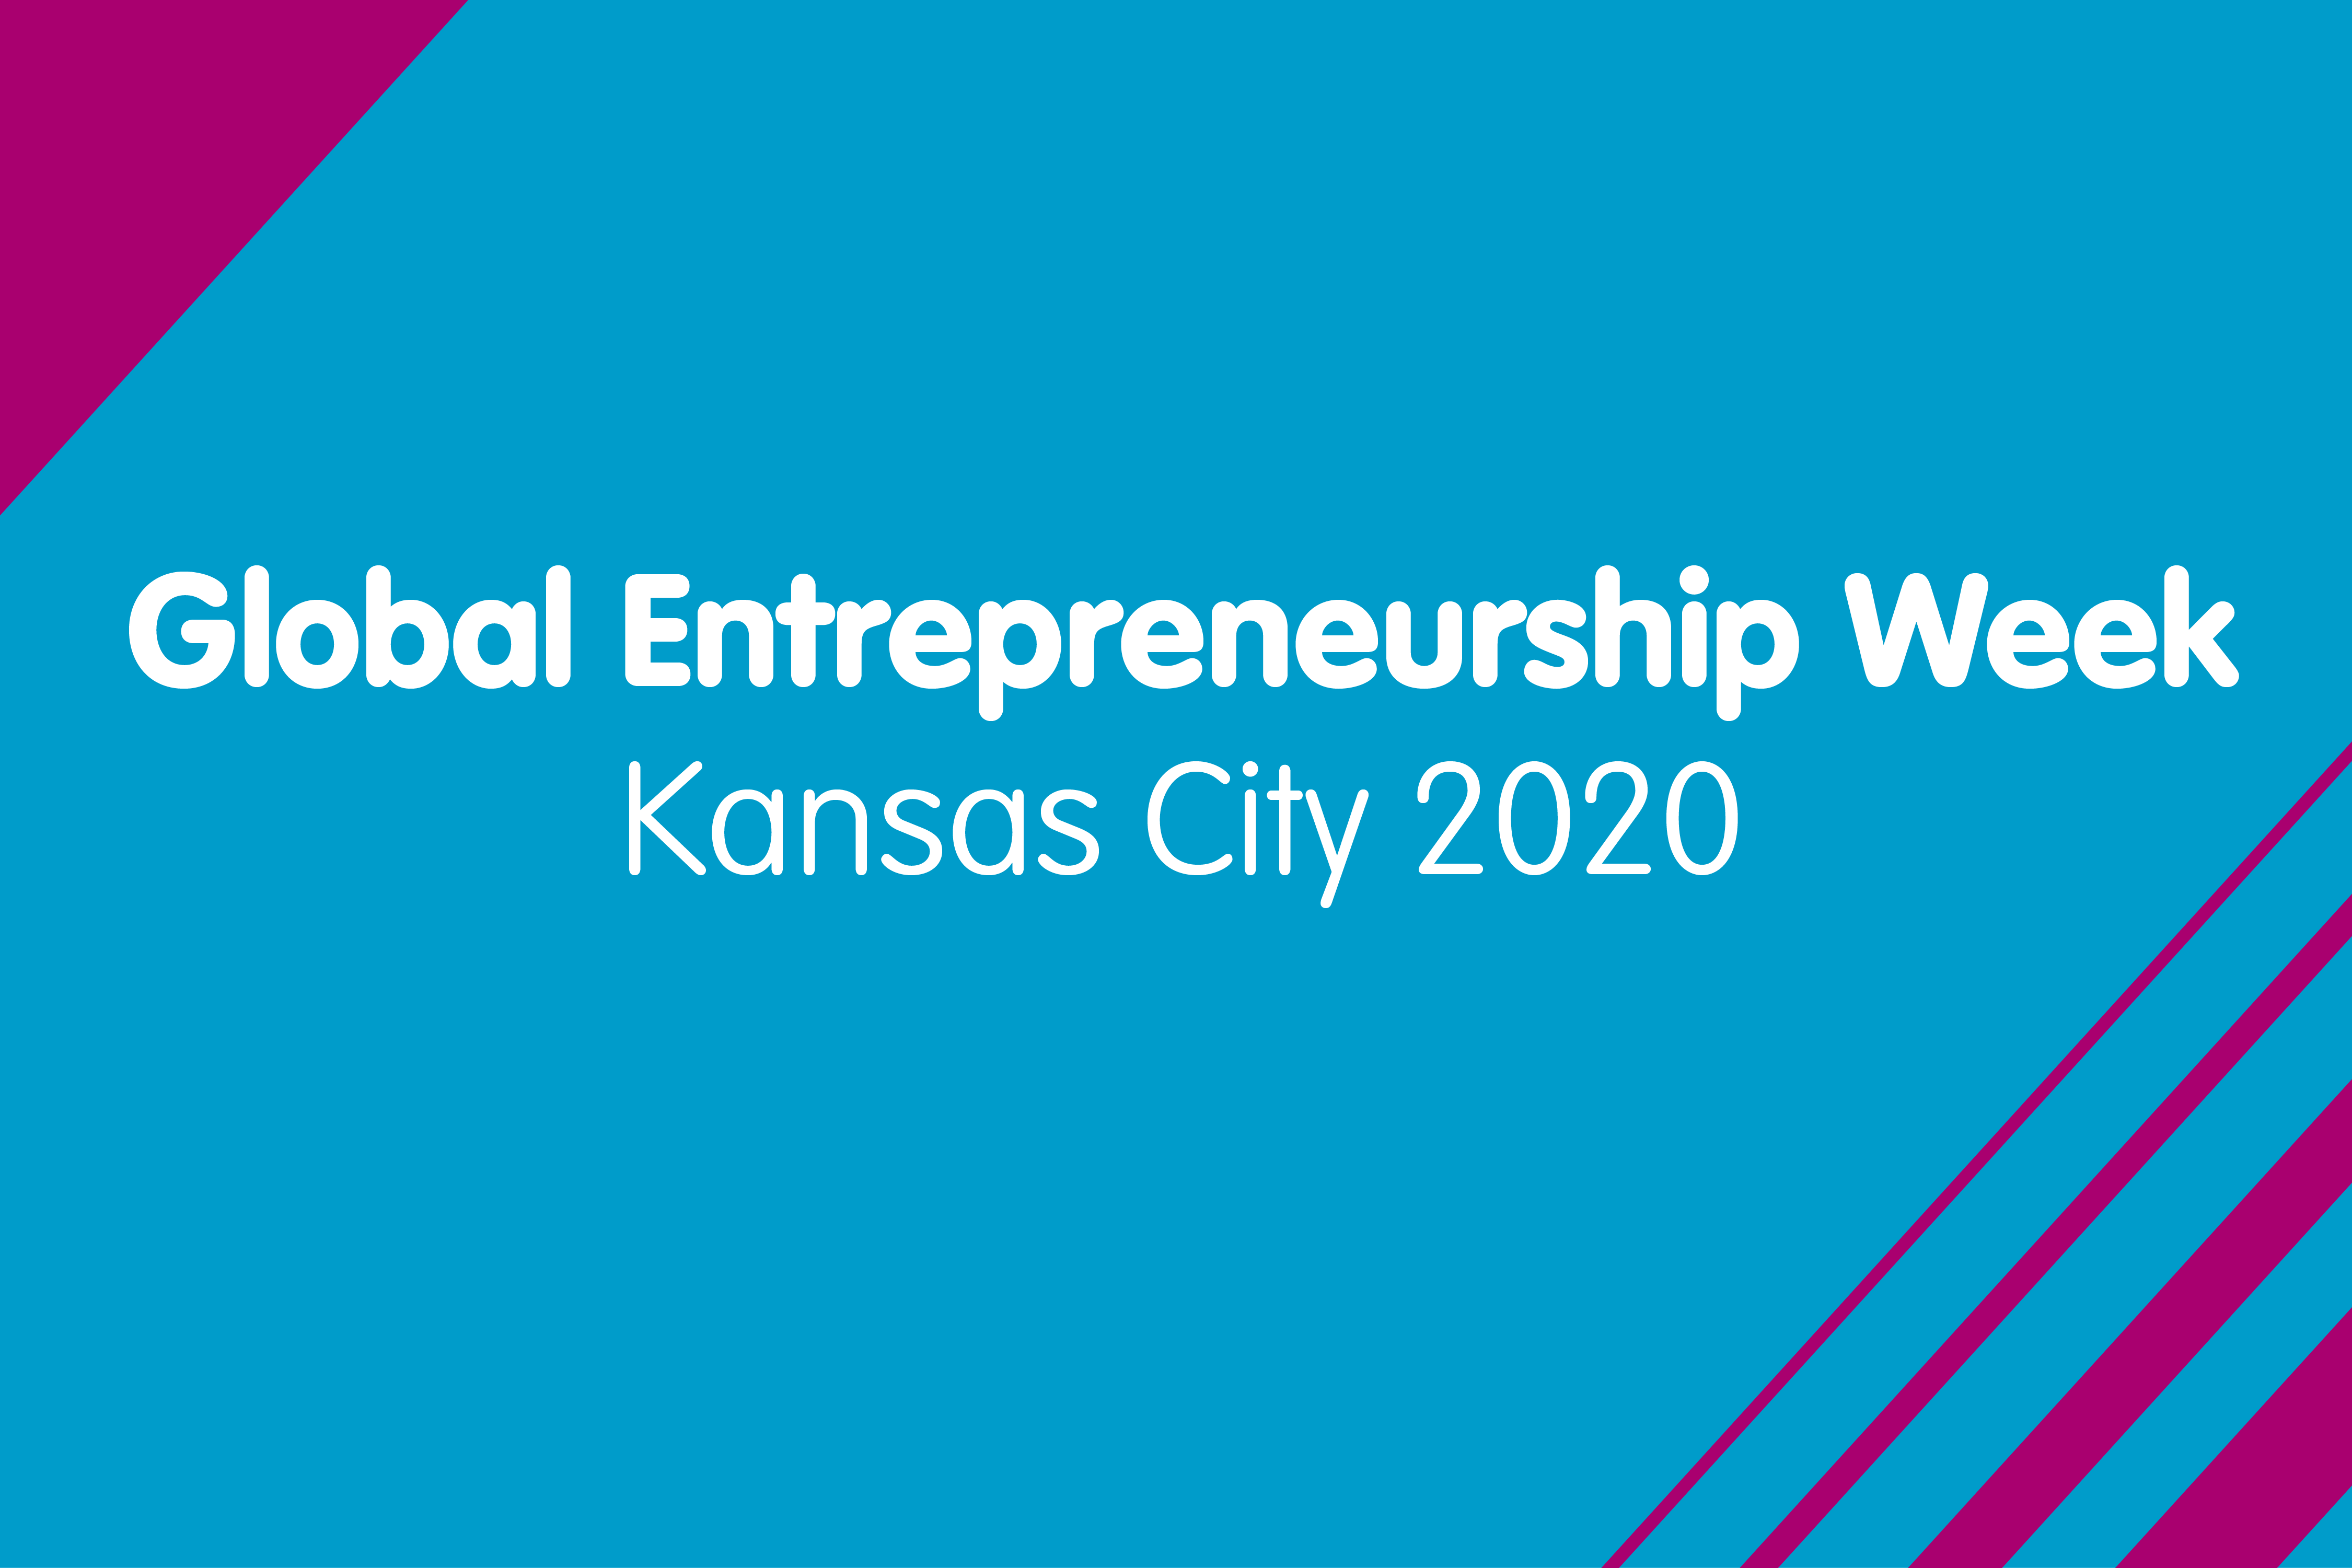 Global Entrepreneurship Week - Kansas City 2020: How to Attend